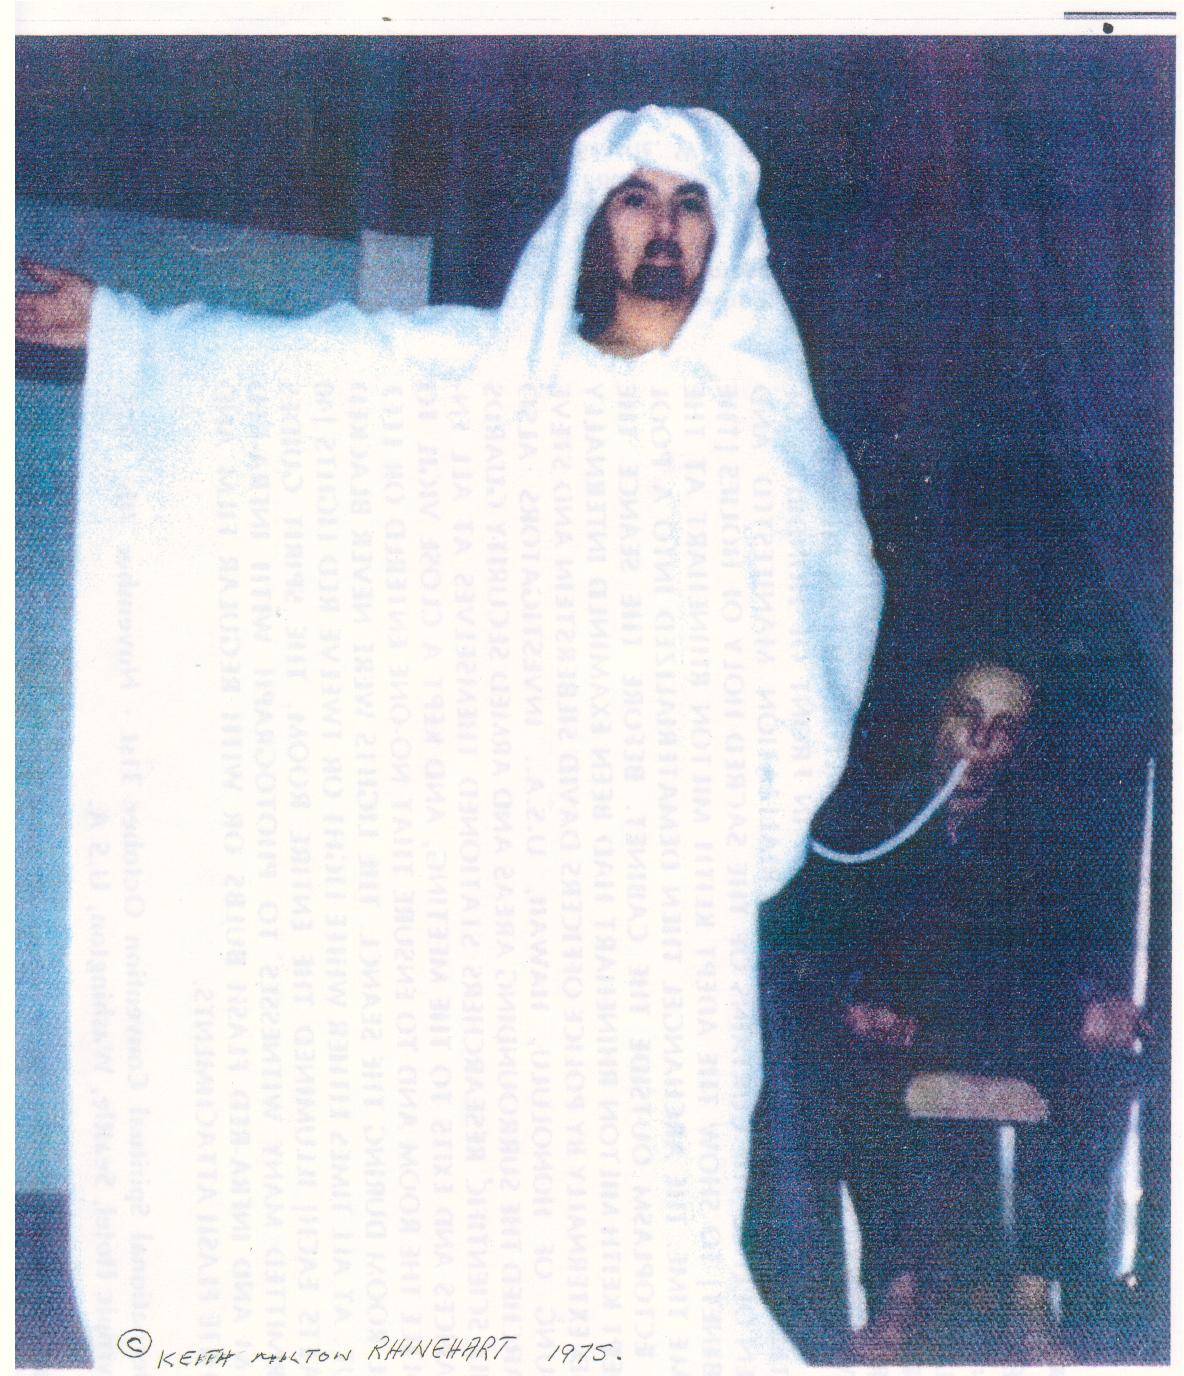 ARCHANGEL GABRIEL MATERIALIZES 1974